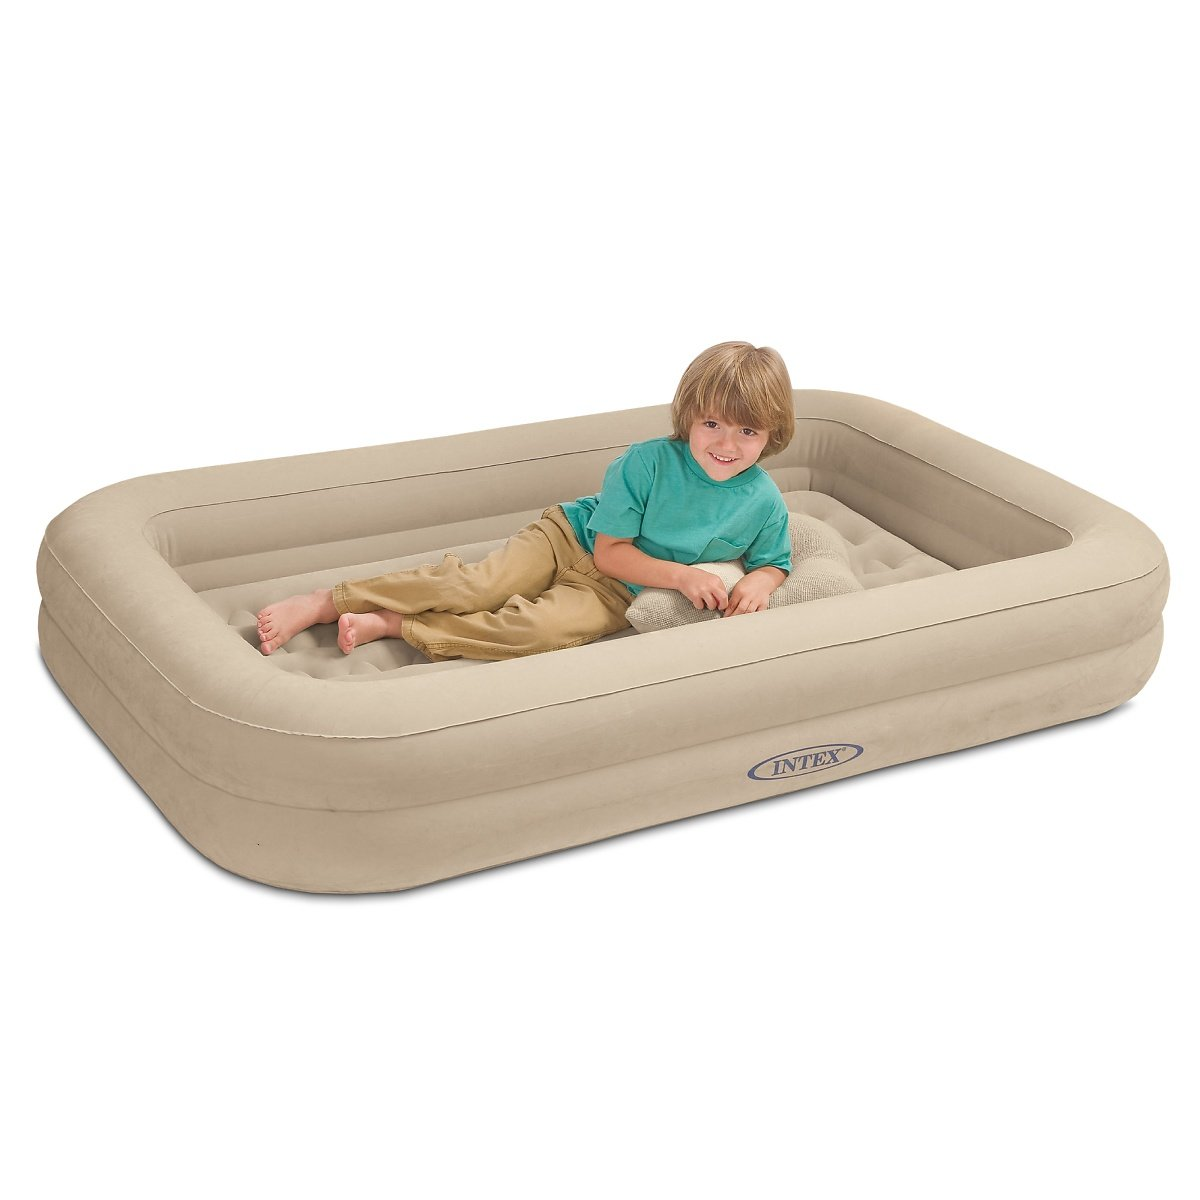 Best Type Of Bed For Toddler